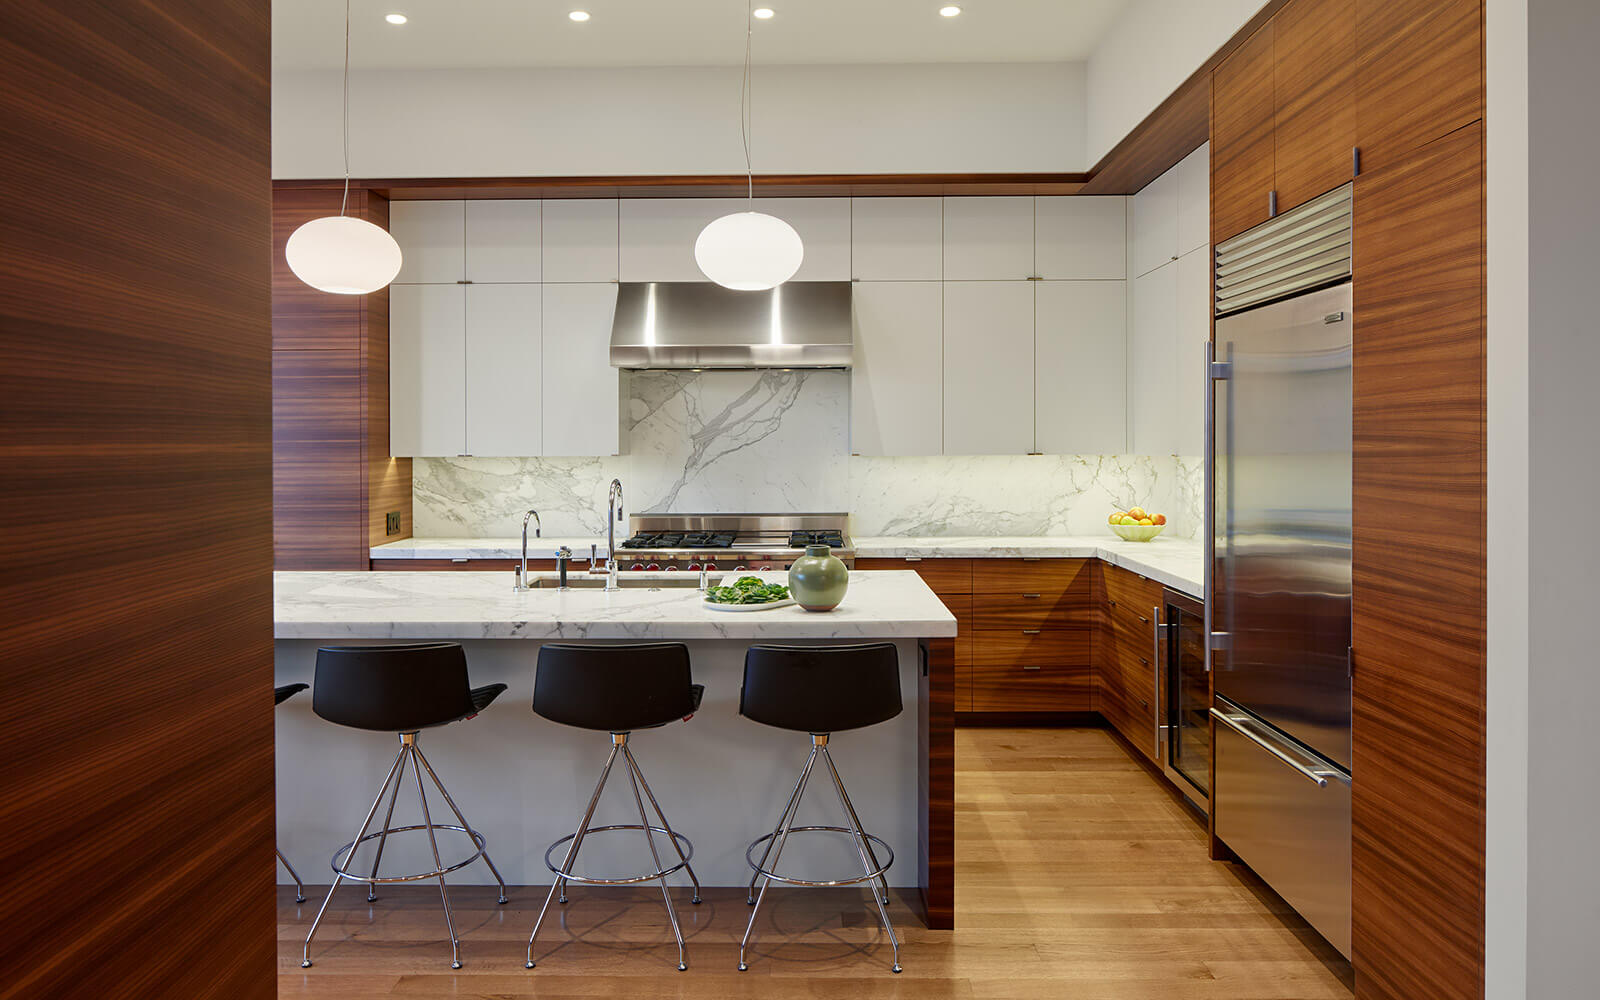 studio vara residential diamond kitchen wood cabinetry